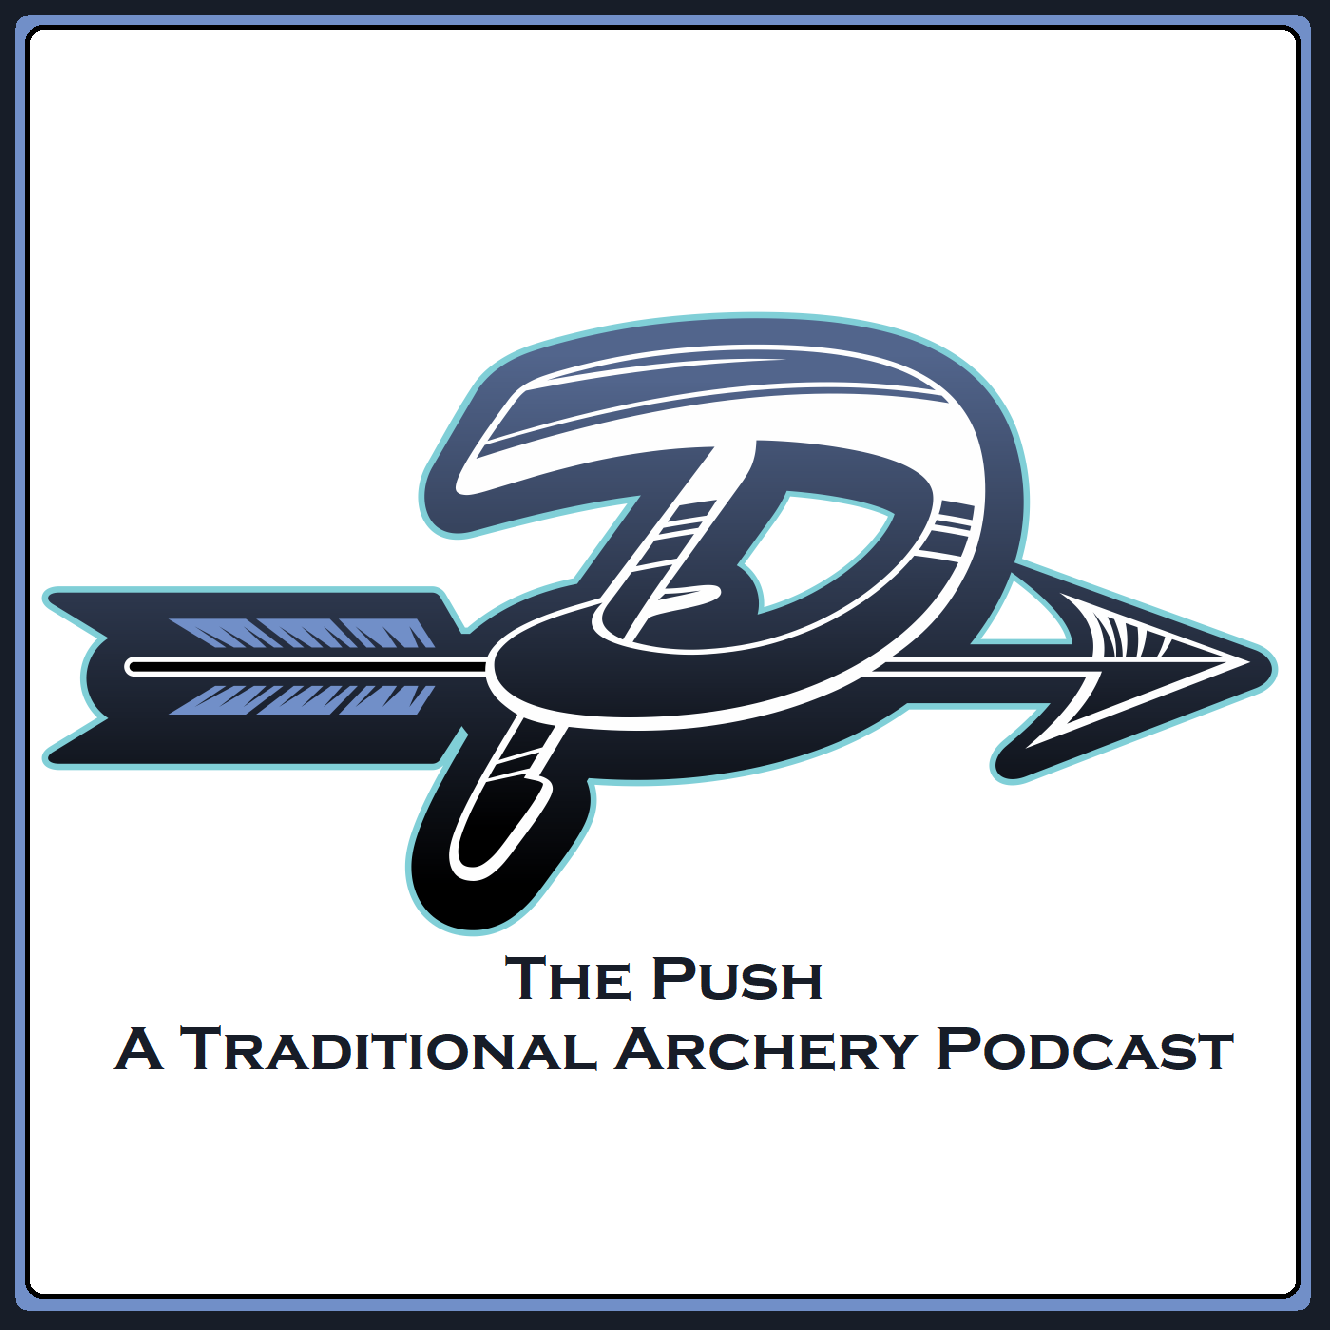 The Push - A Traditional Archery Podcast show art